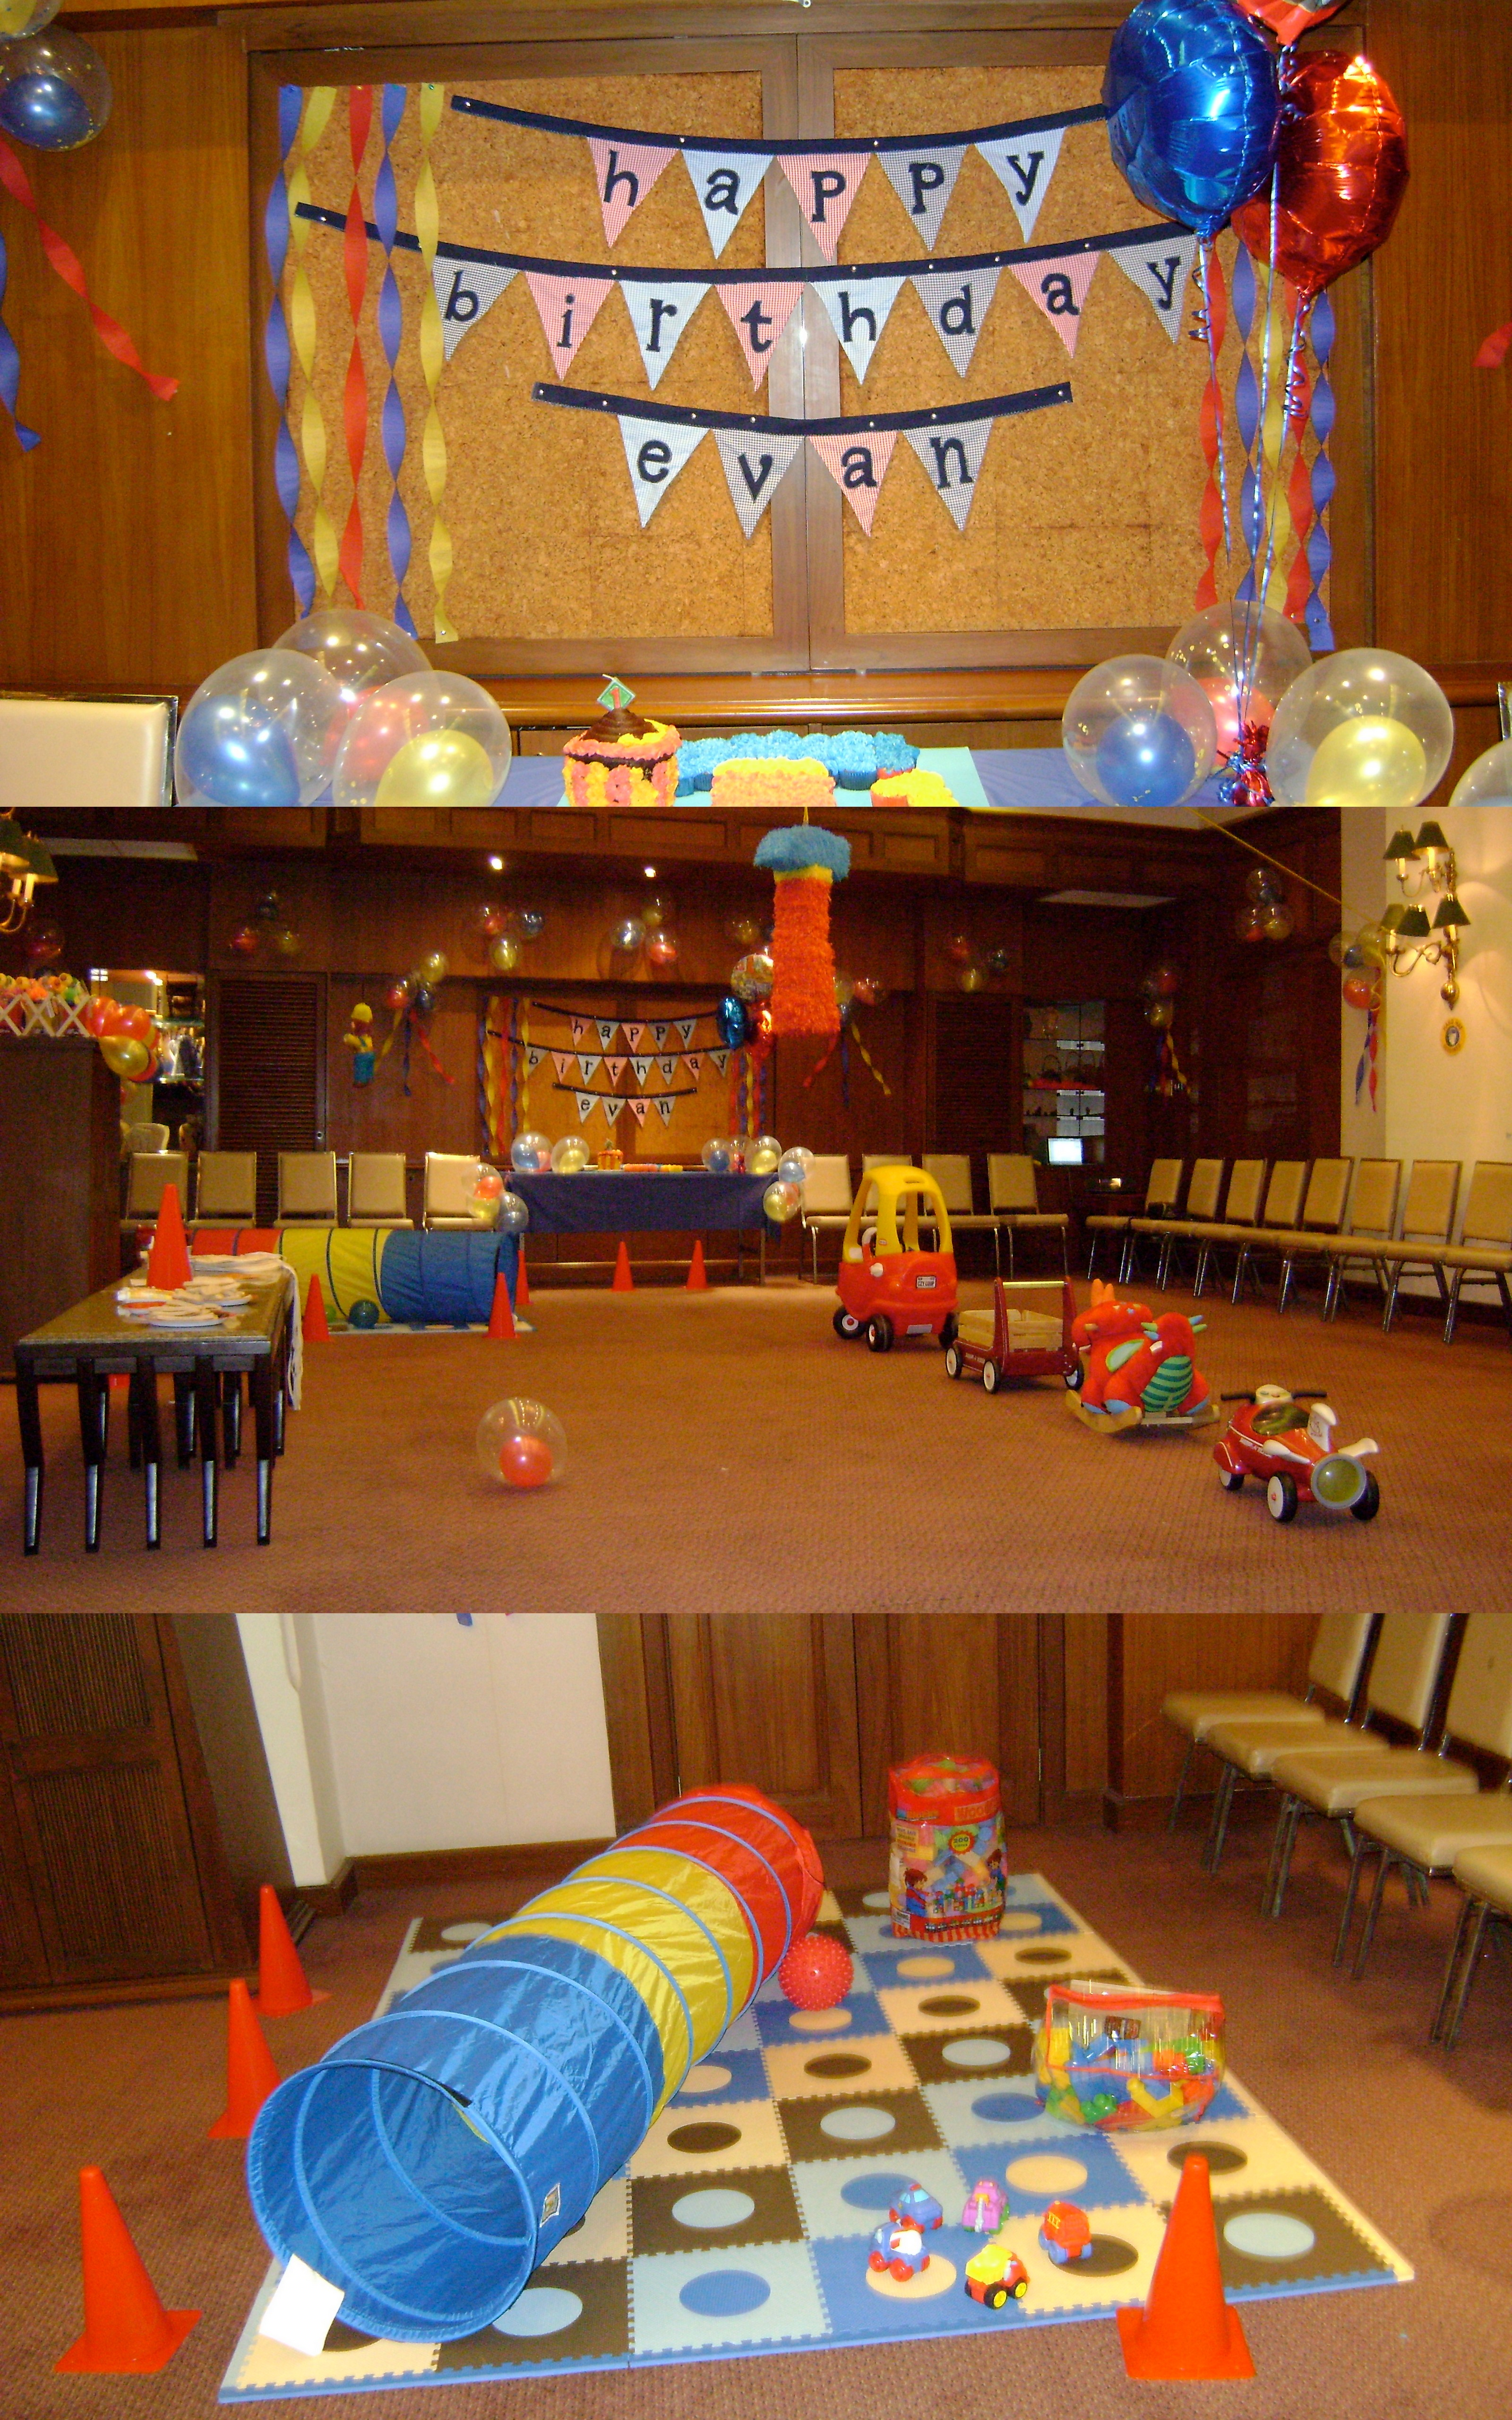 baby birthday party games ; valuable-idea-1st-birthday-party-games-ideas-blast-from-the-past-evan-s-1st-stumble-abroad